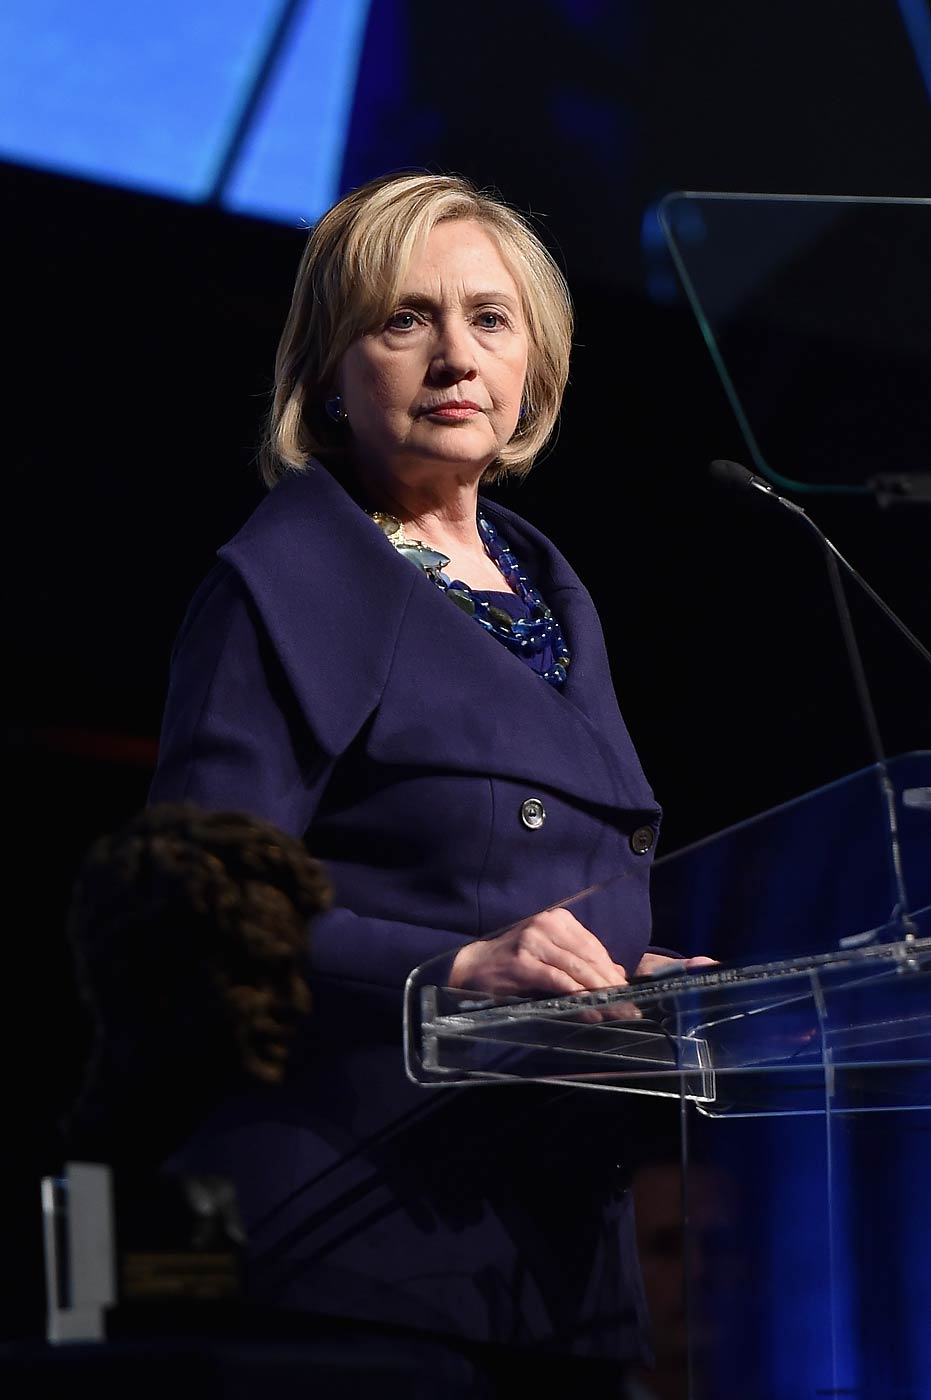 Hillary Rodham Clinton speaks onstage at the RFK Ripple Of Hope Gala at the Hilton Hotel Midtown on Dec. 16, 2014 in New York City.